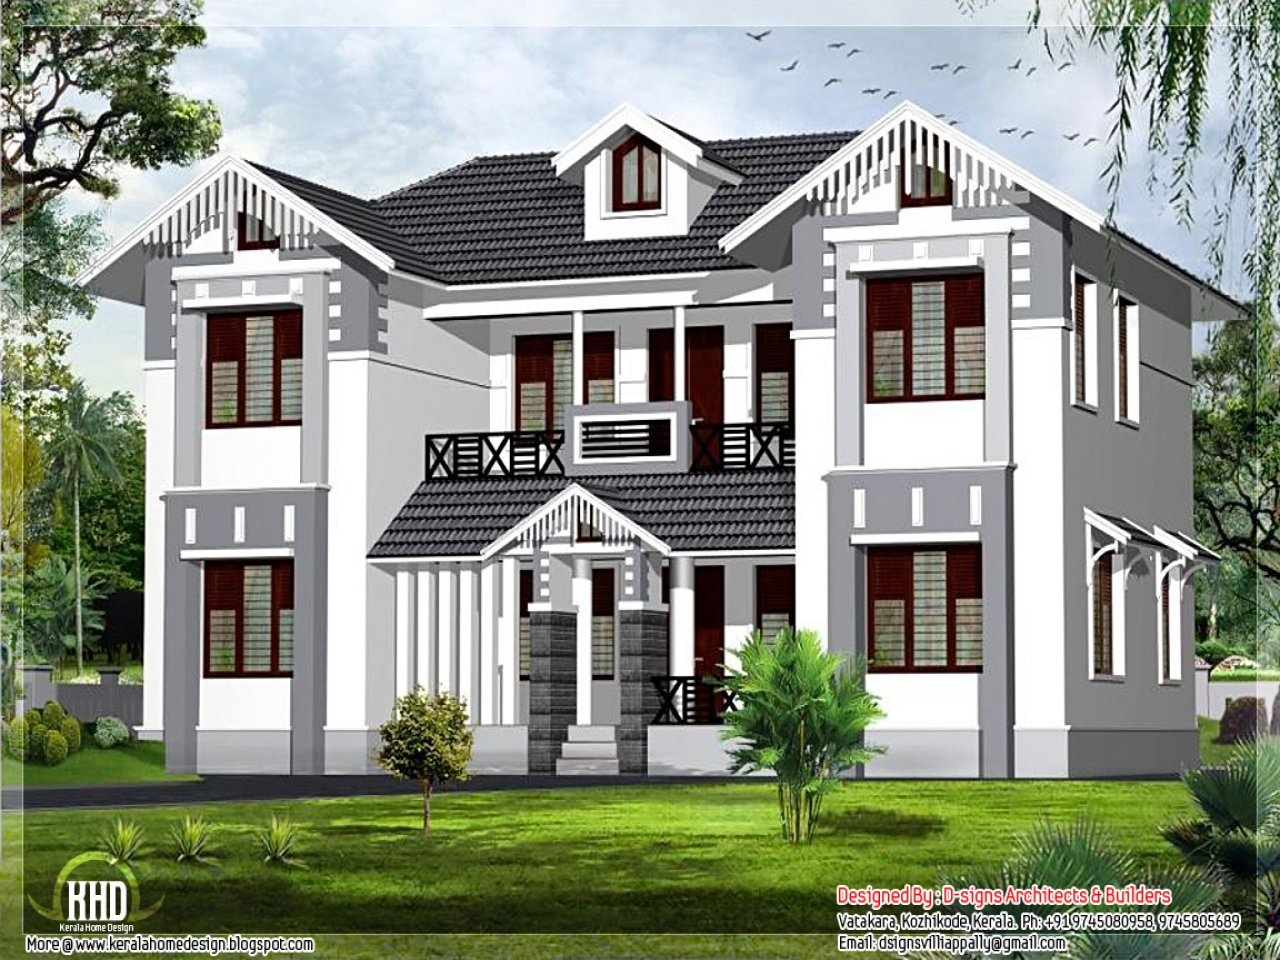 Sri lanka home designs plans indian home design good for Nice house ideas